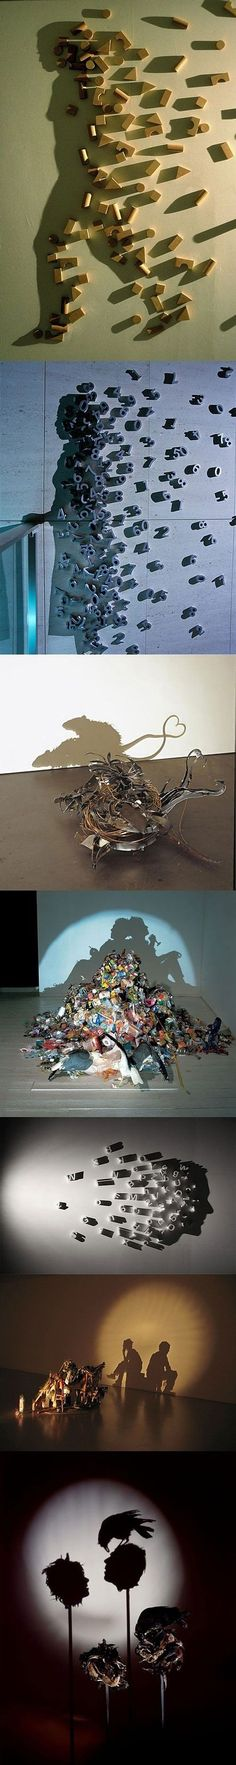 Amazing Shadow Art